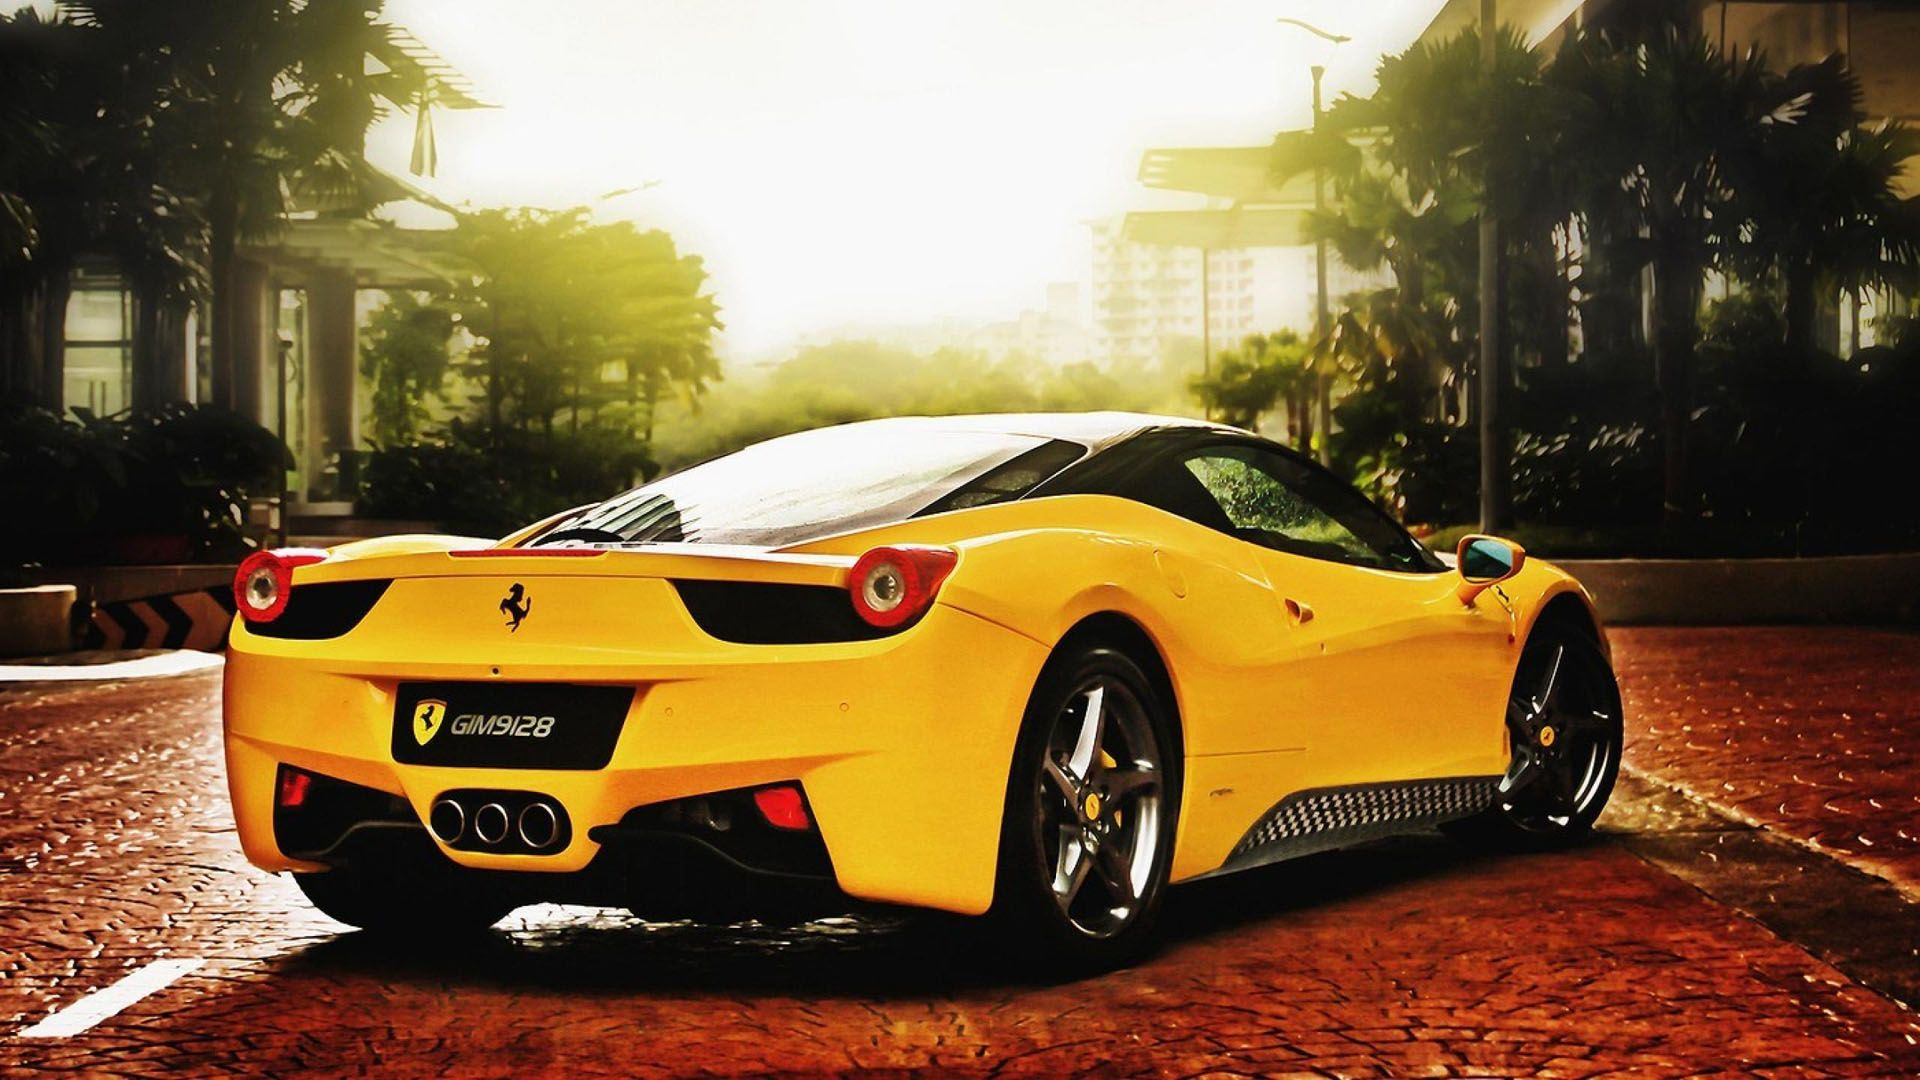 Ferrari-hd-for-desktop-http-azzi-net-cars-ferrari-sports-car-wallpap-wallpaper-wpc5804773